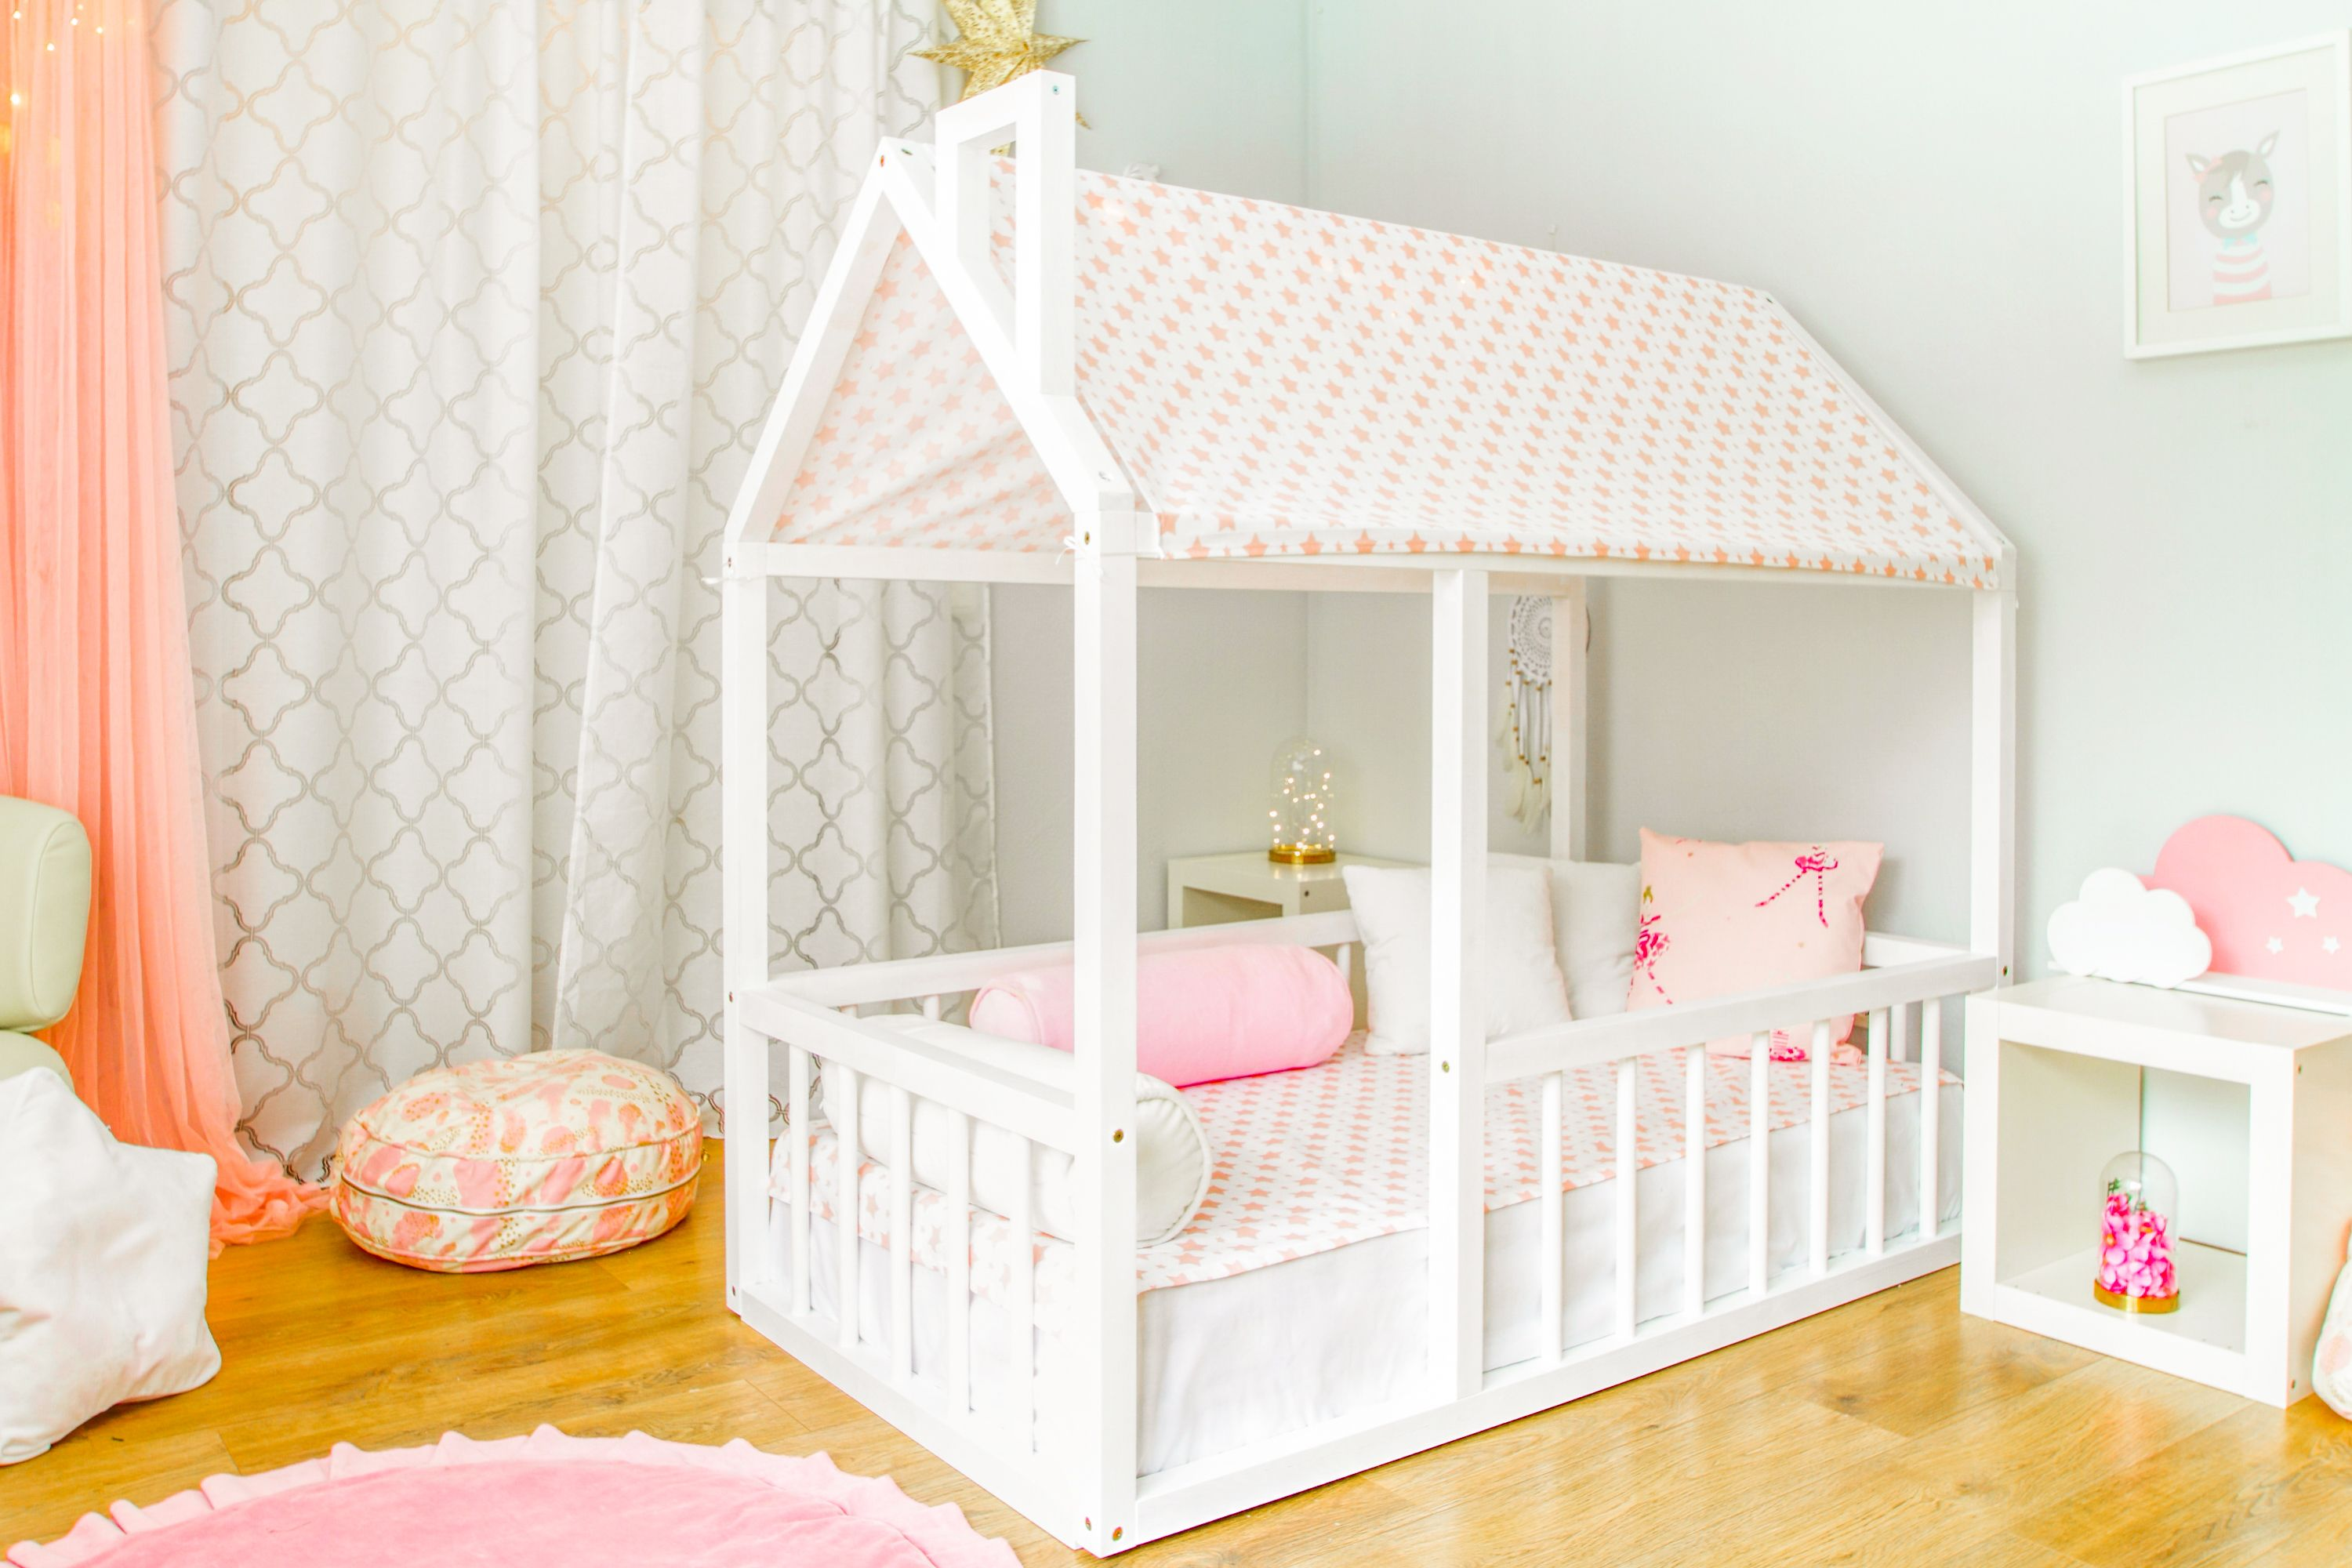 Nursery Bed House Nursery House Children Bed Toddler Bed House Bed Kids Teepee Wood House Ready To Ship Size 160cm X 8cm White Toddler Bed Frame House Beds House Frame Bed